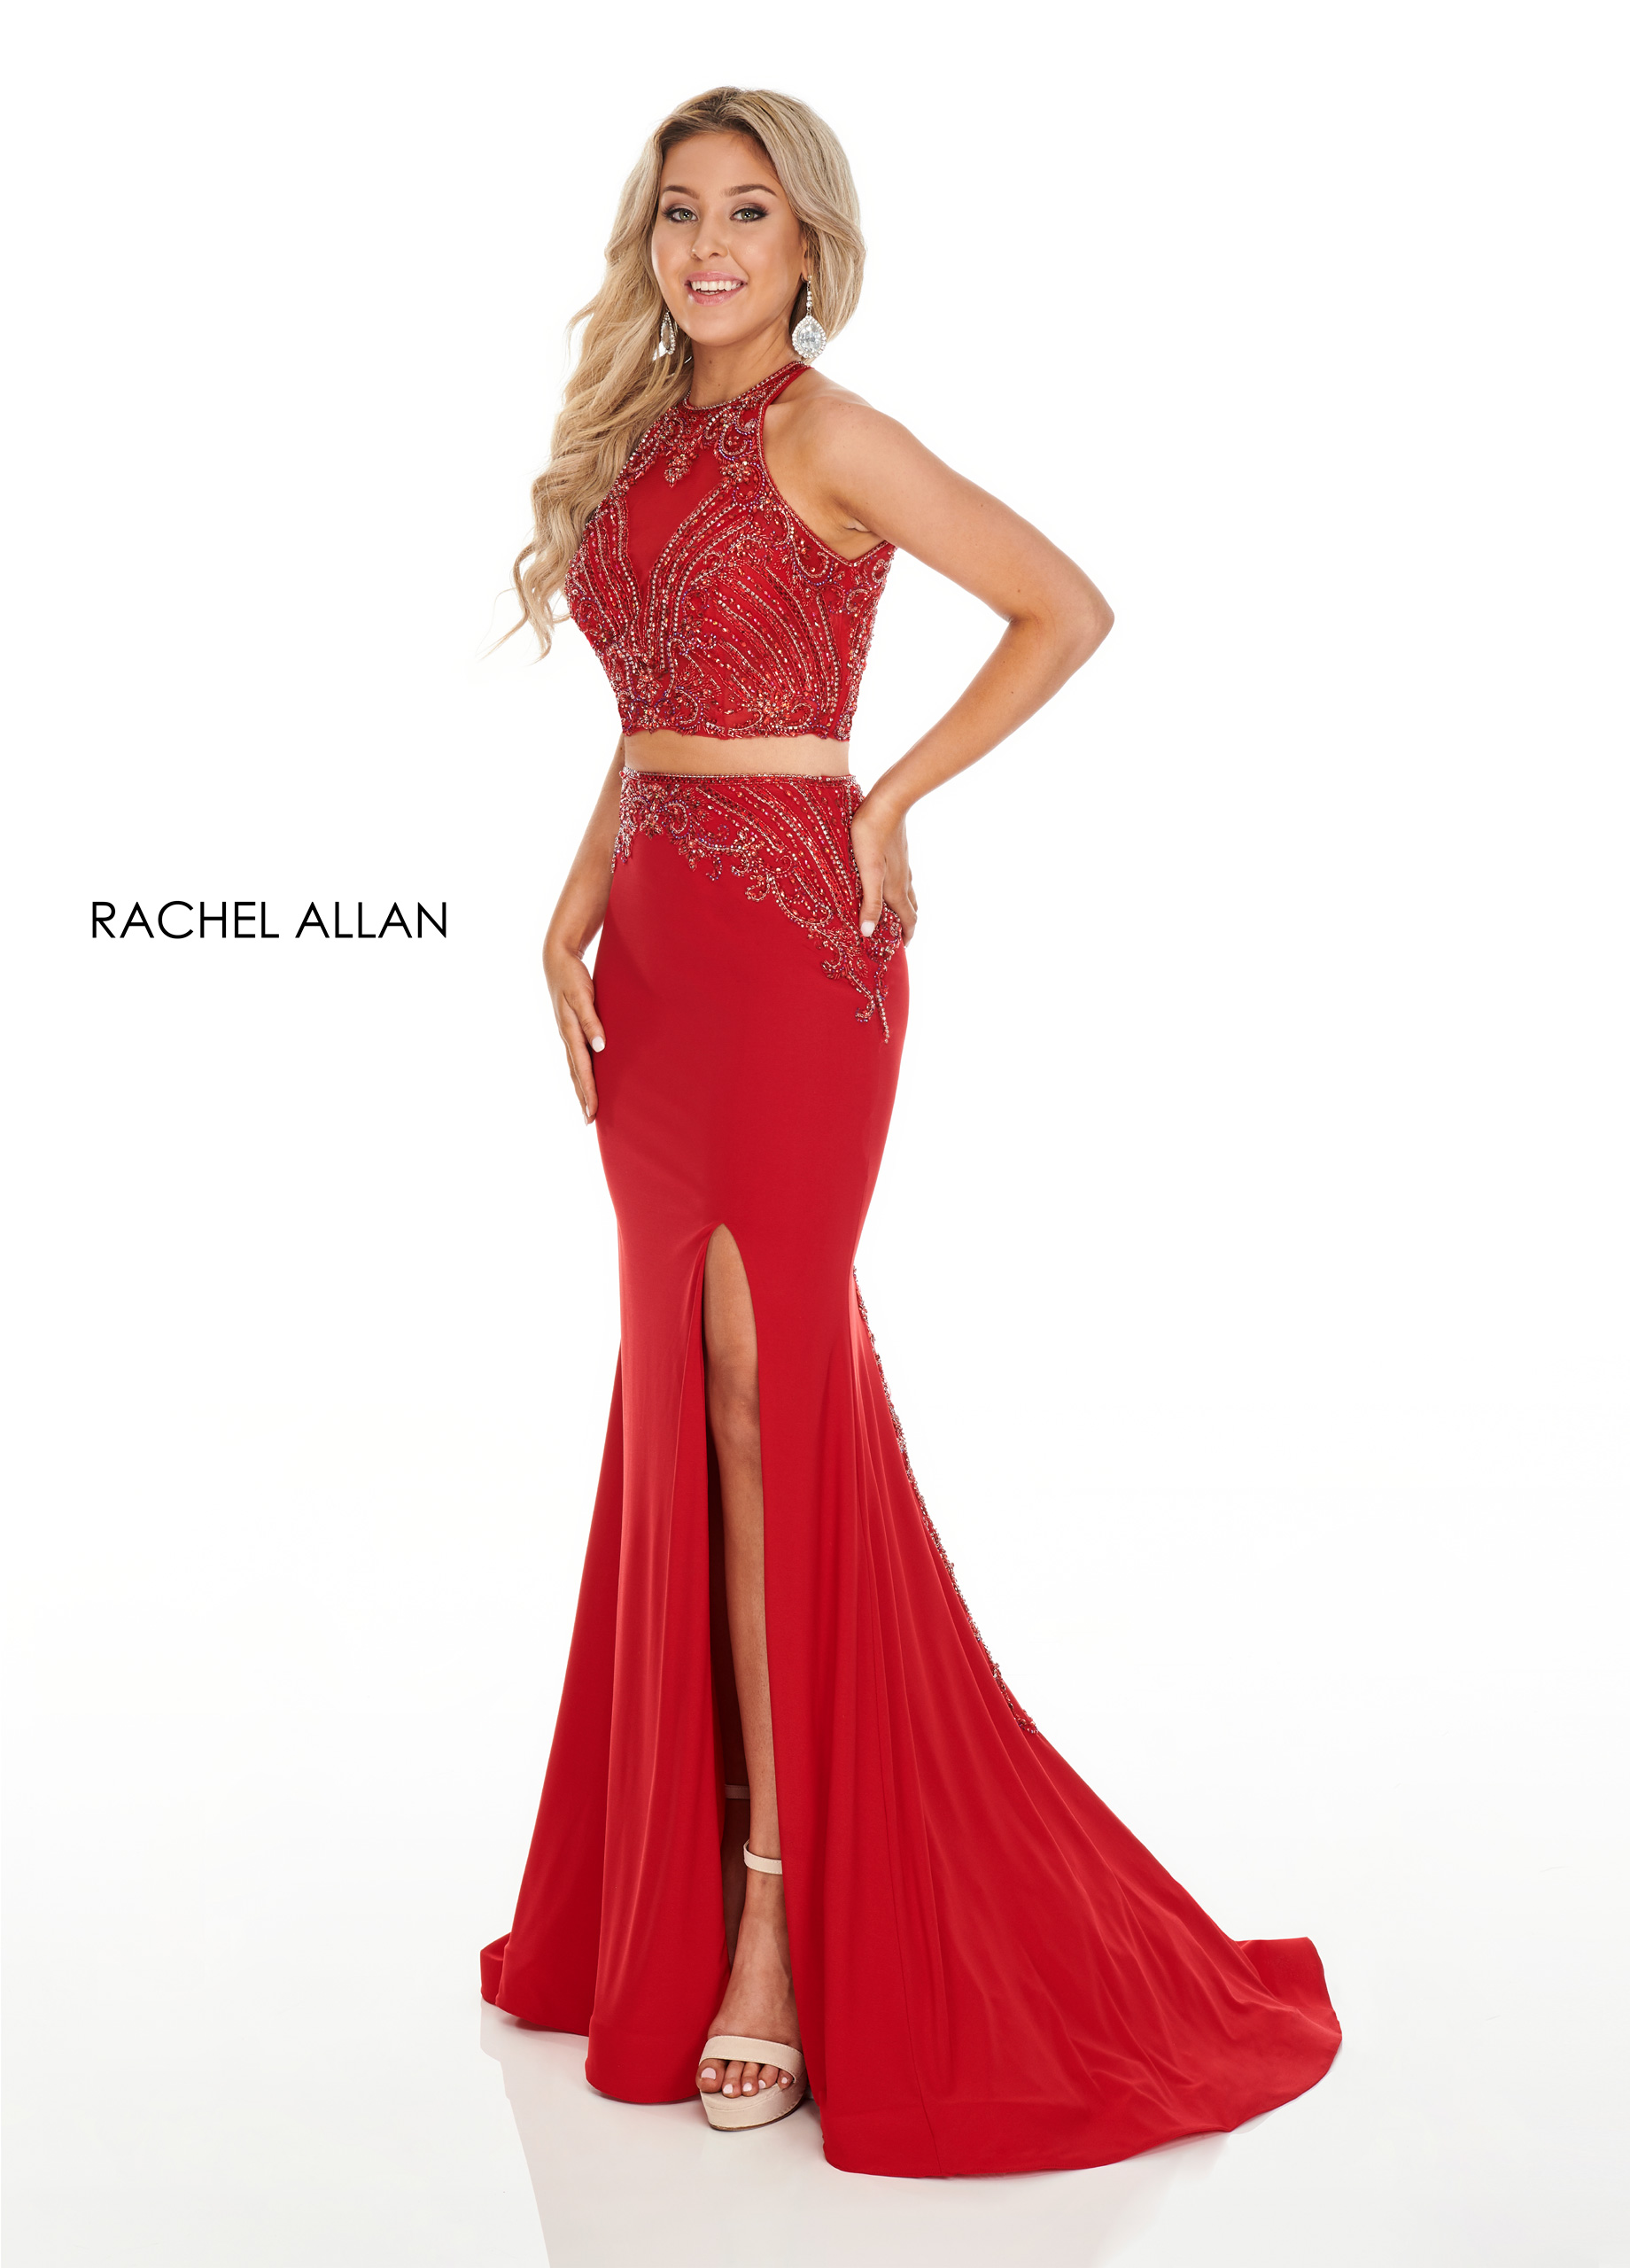 Beaded Two-Piece Prom Dresses in Red Color